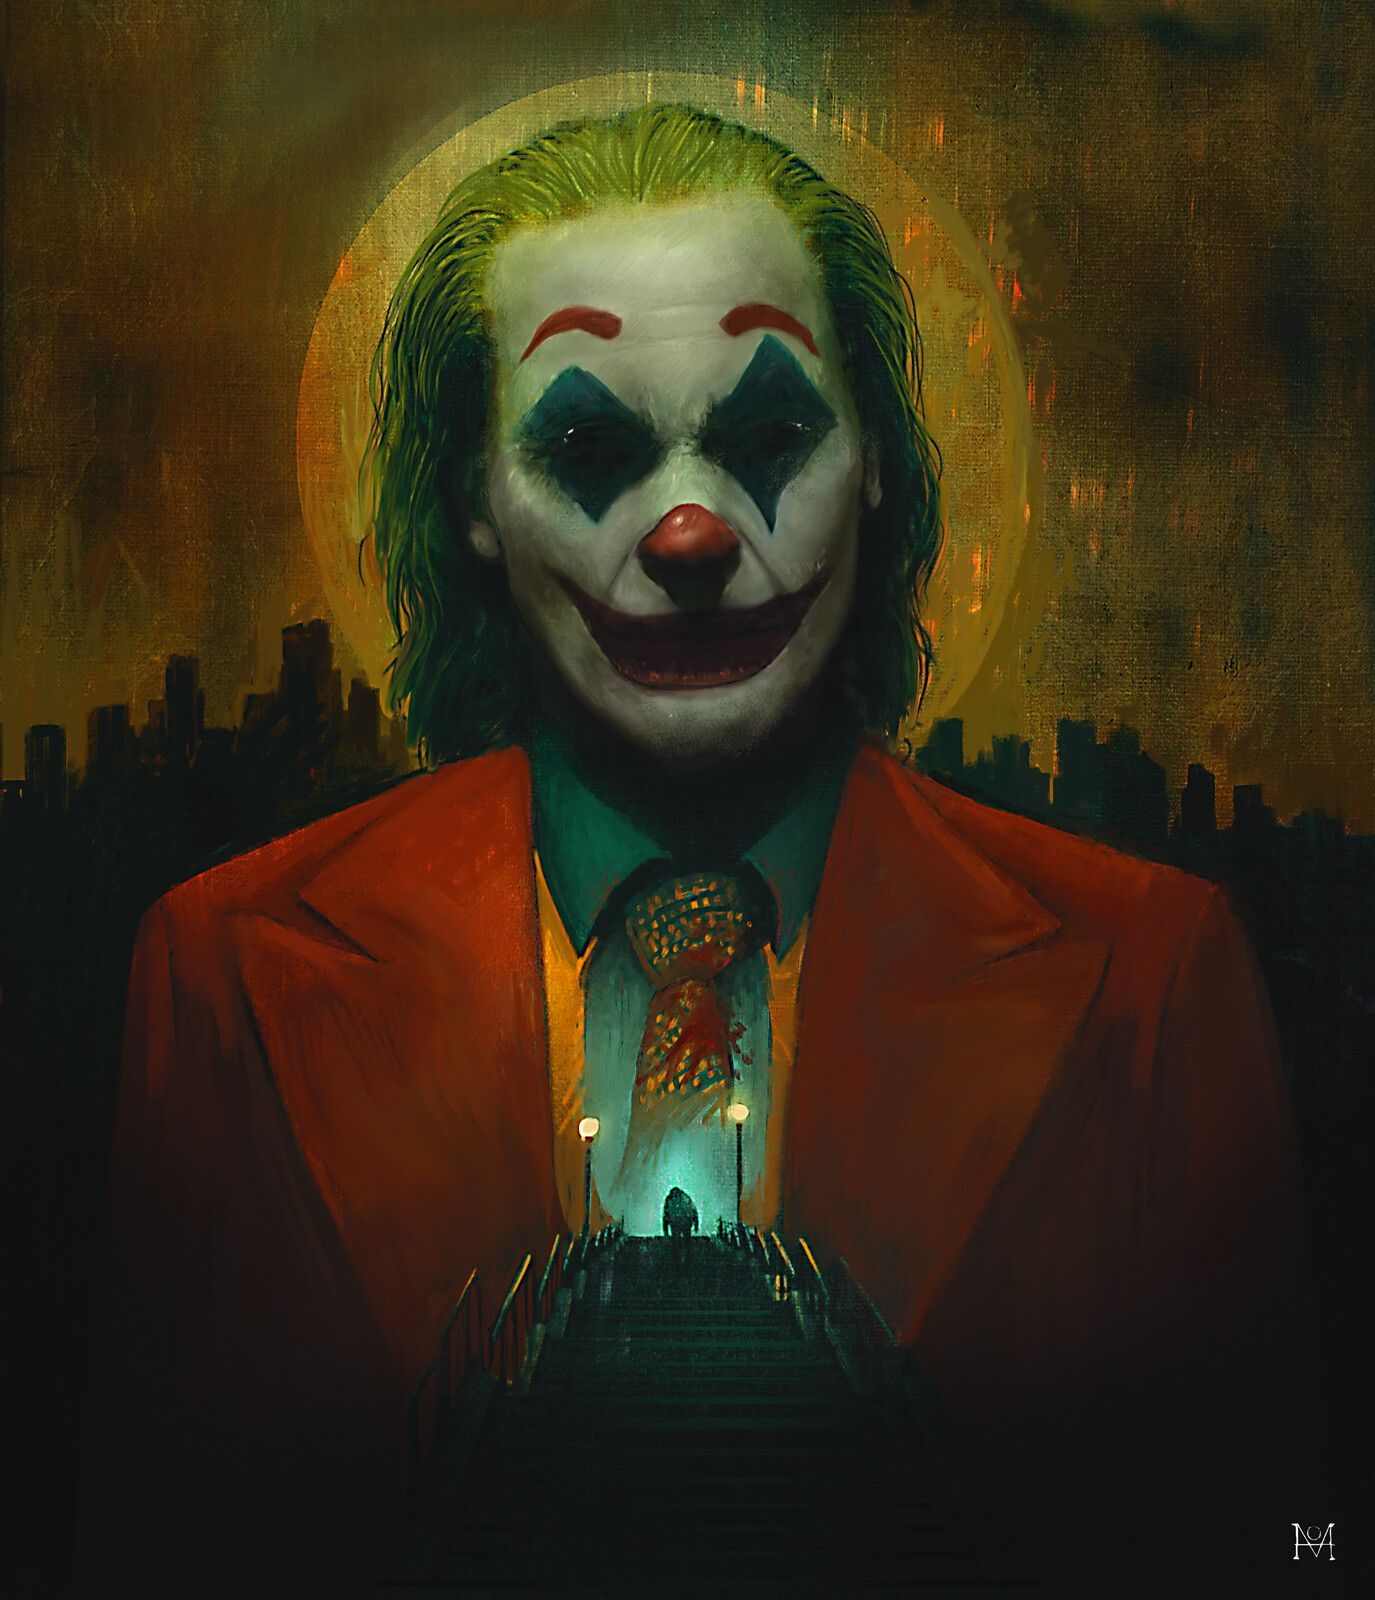 joker-hd-wallpapers-1080p